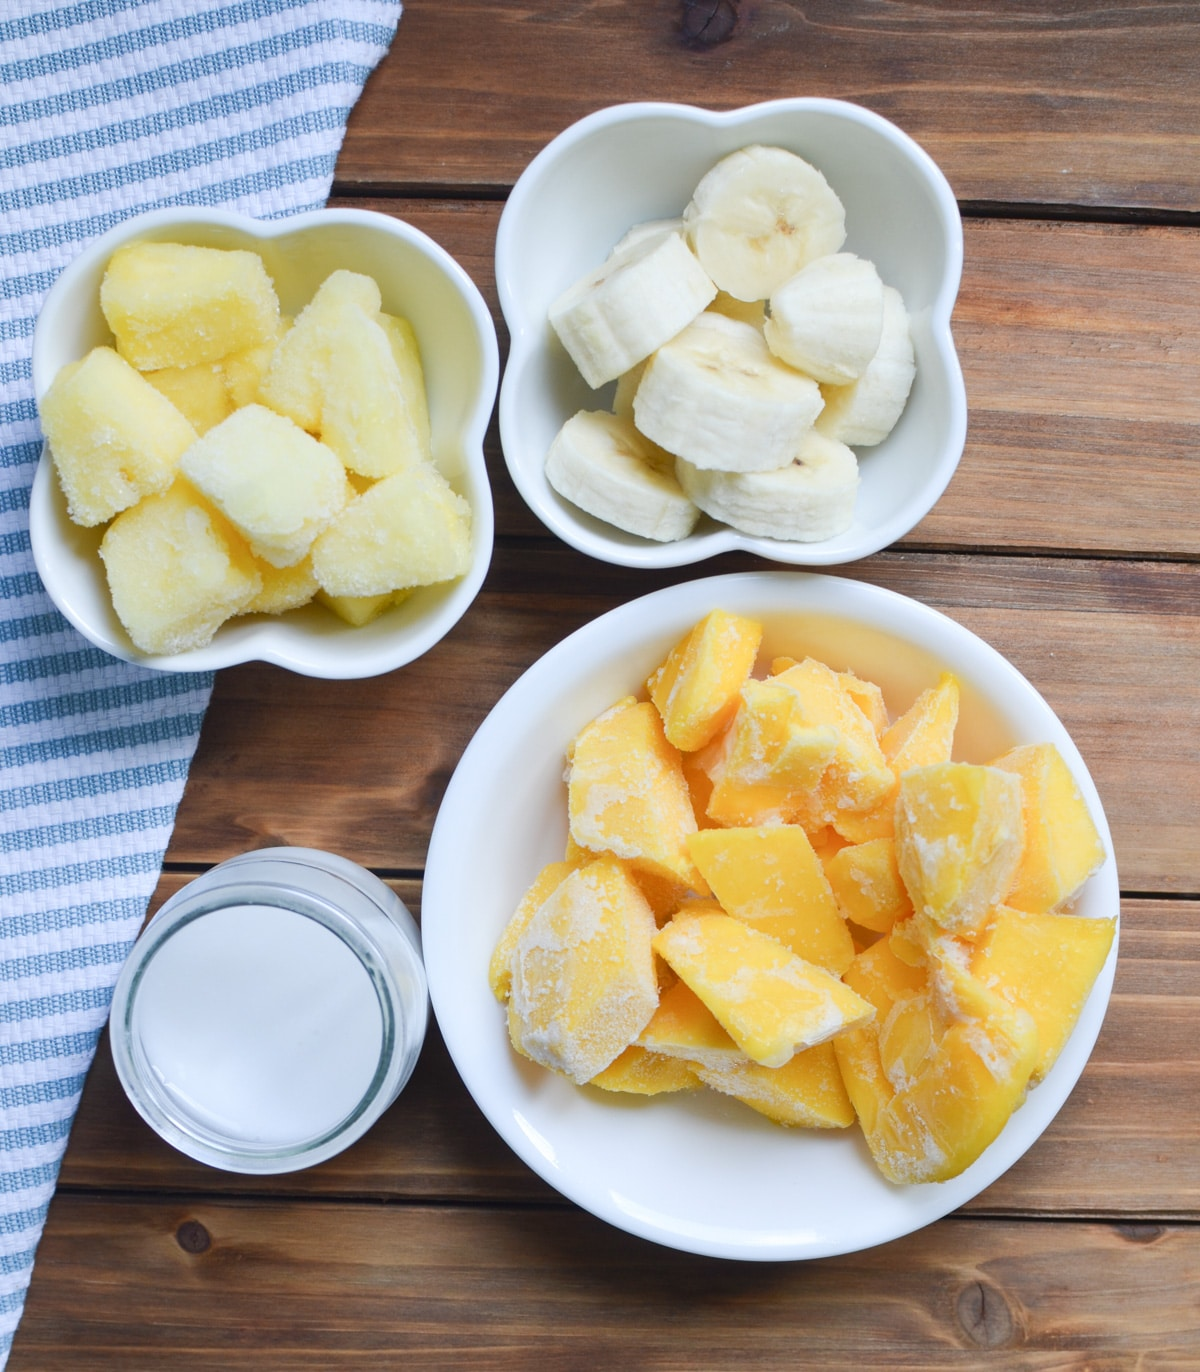 ingredients for mango smoothie bowl in small bowls on counter.